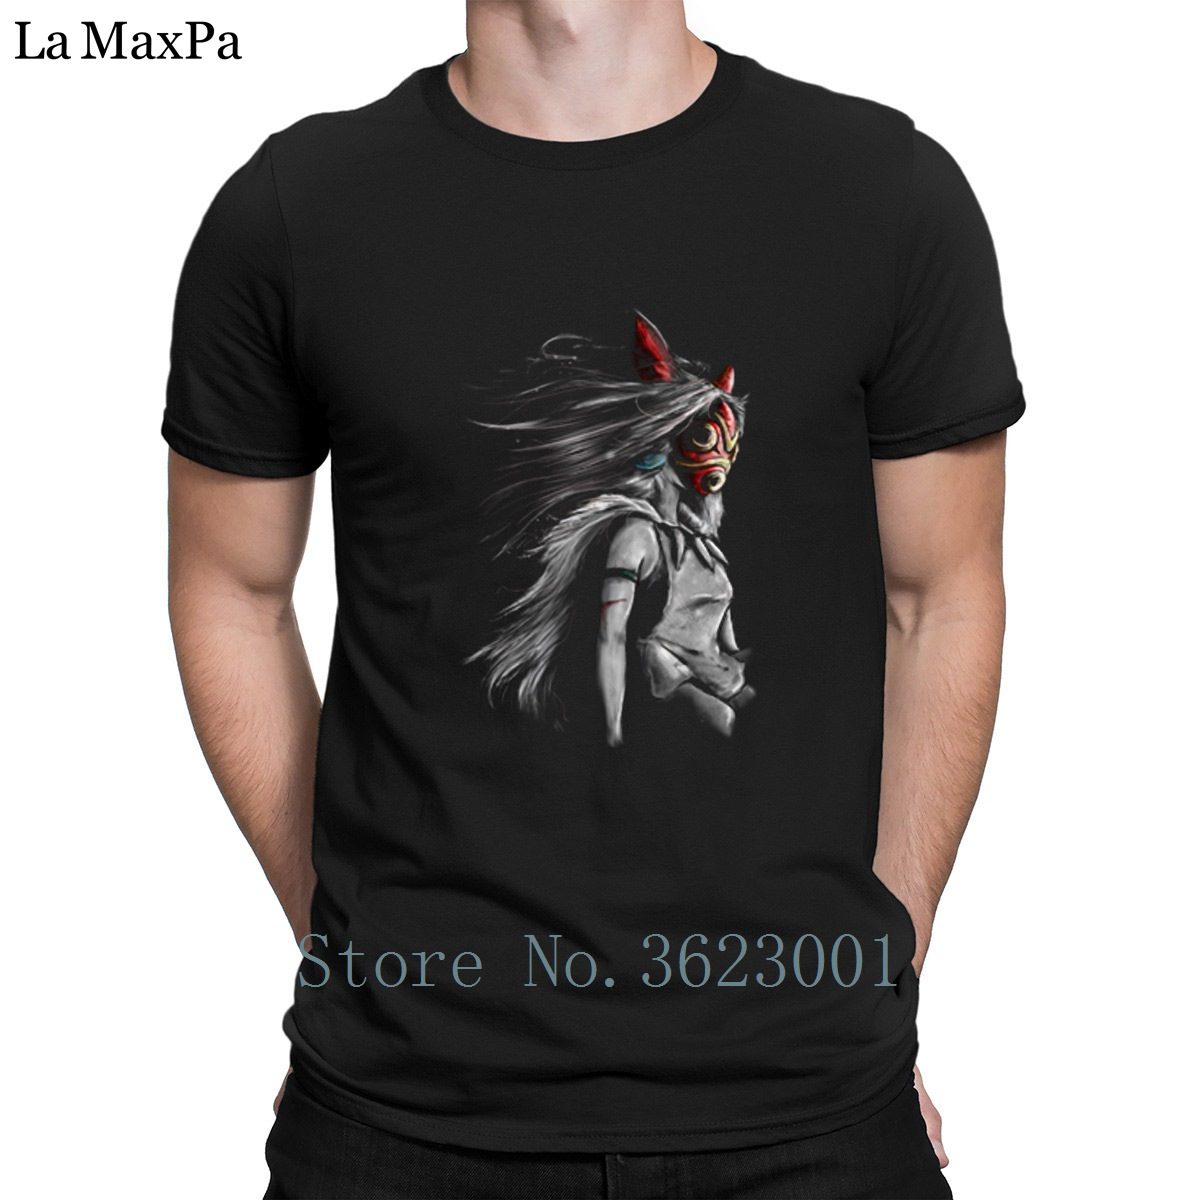 Knitted Original Tee Shirt The Fury Of The Wolf Warrior Tee Shirt 100% Cotton Hot Sale T Shirt Fun T-Shirt For Mens Latest 2018